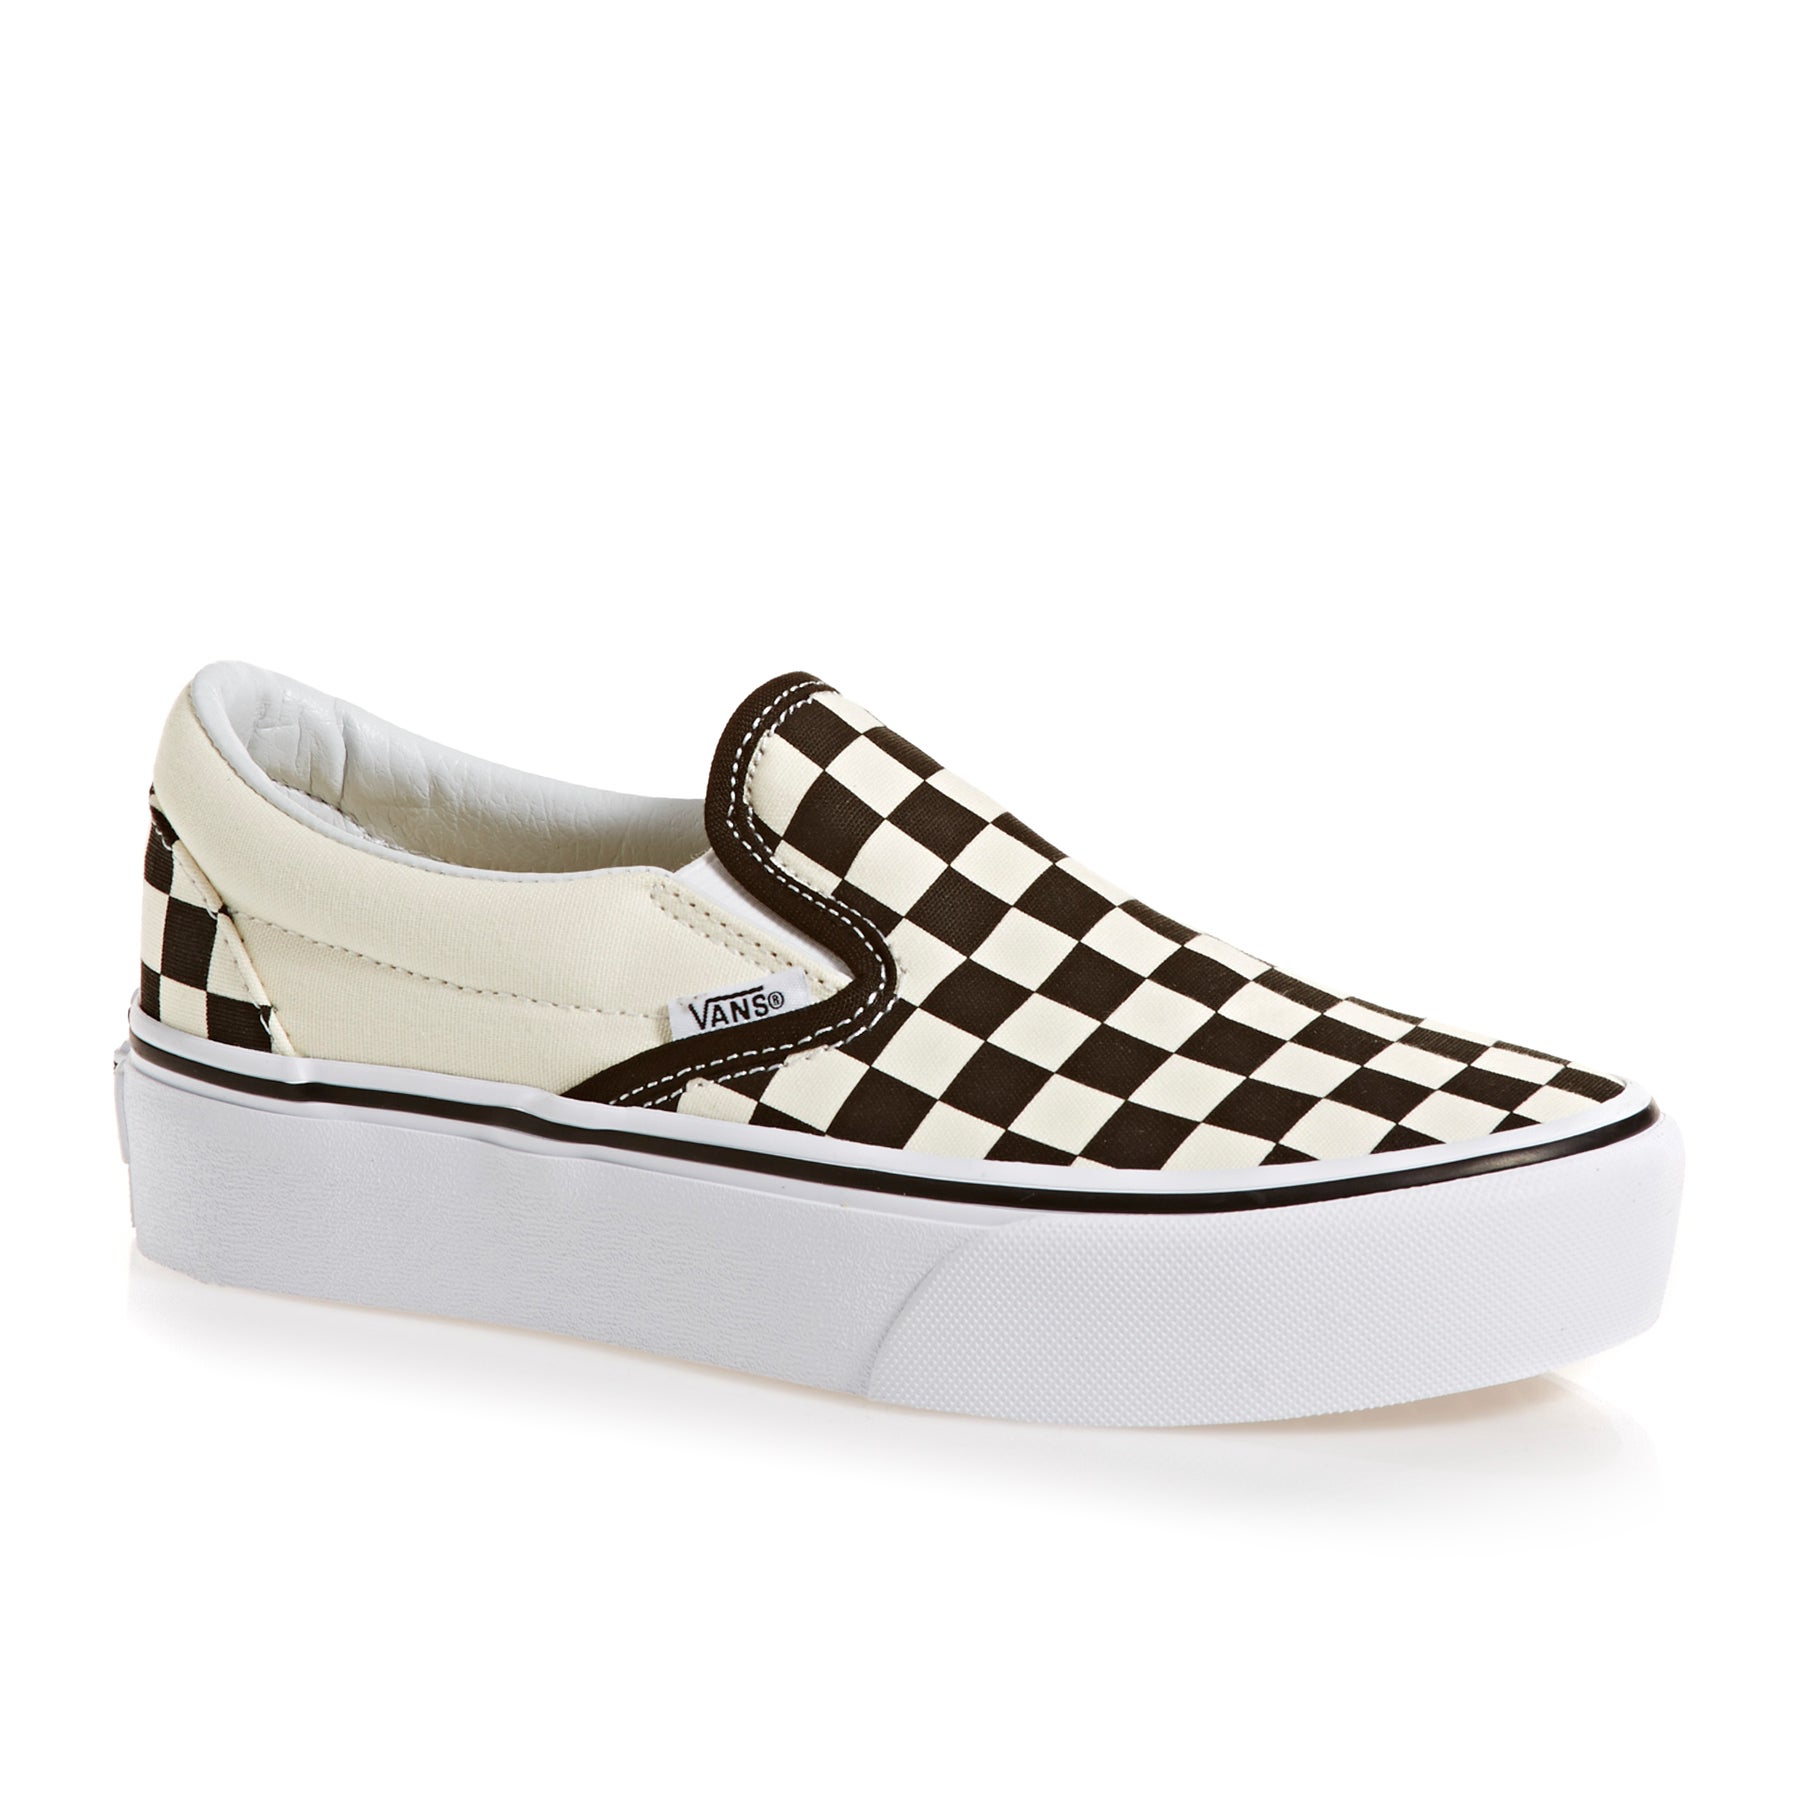 Vans Classic Womens Slip On Shoes - Black Cream Checker